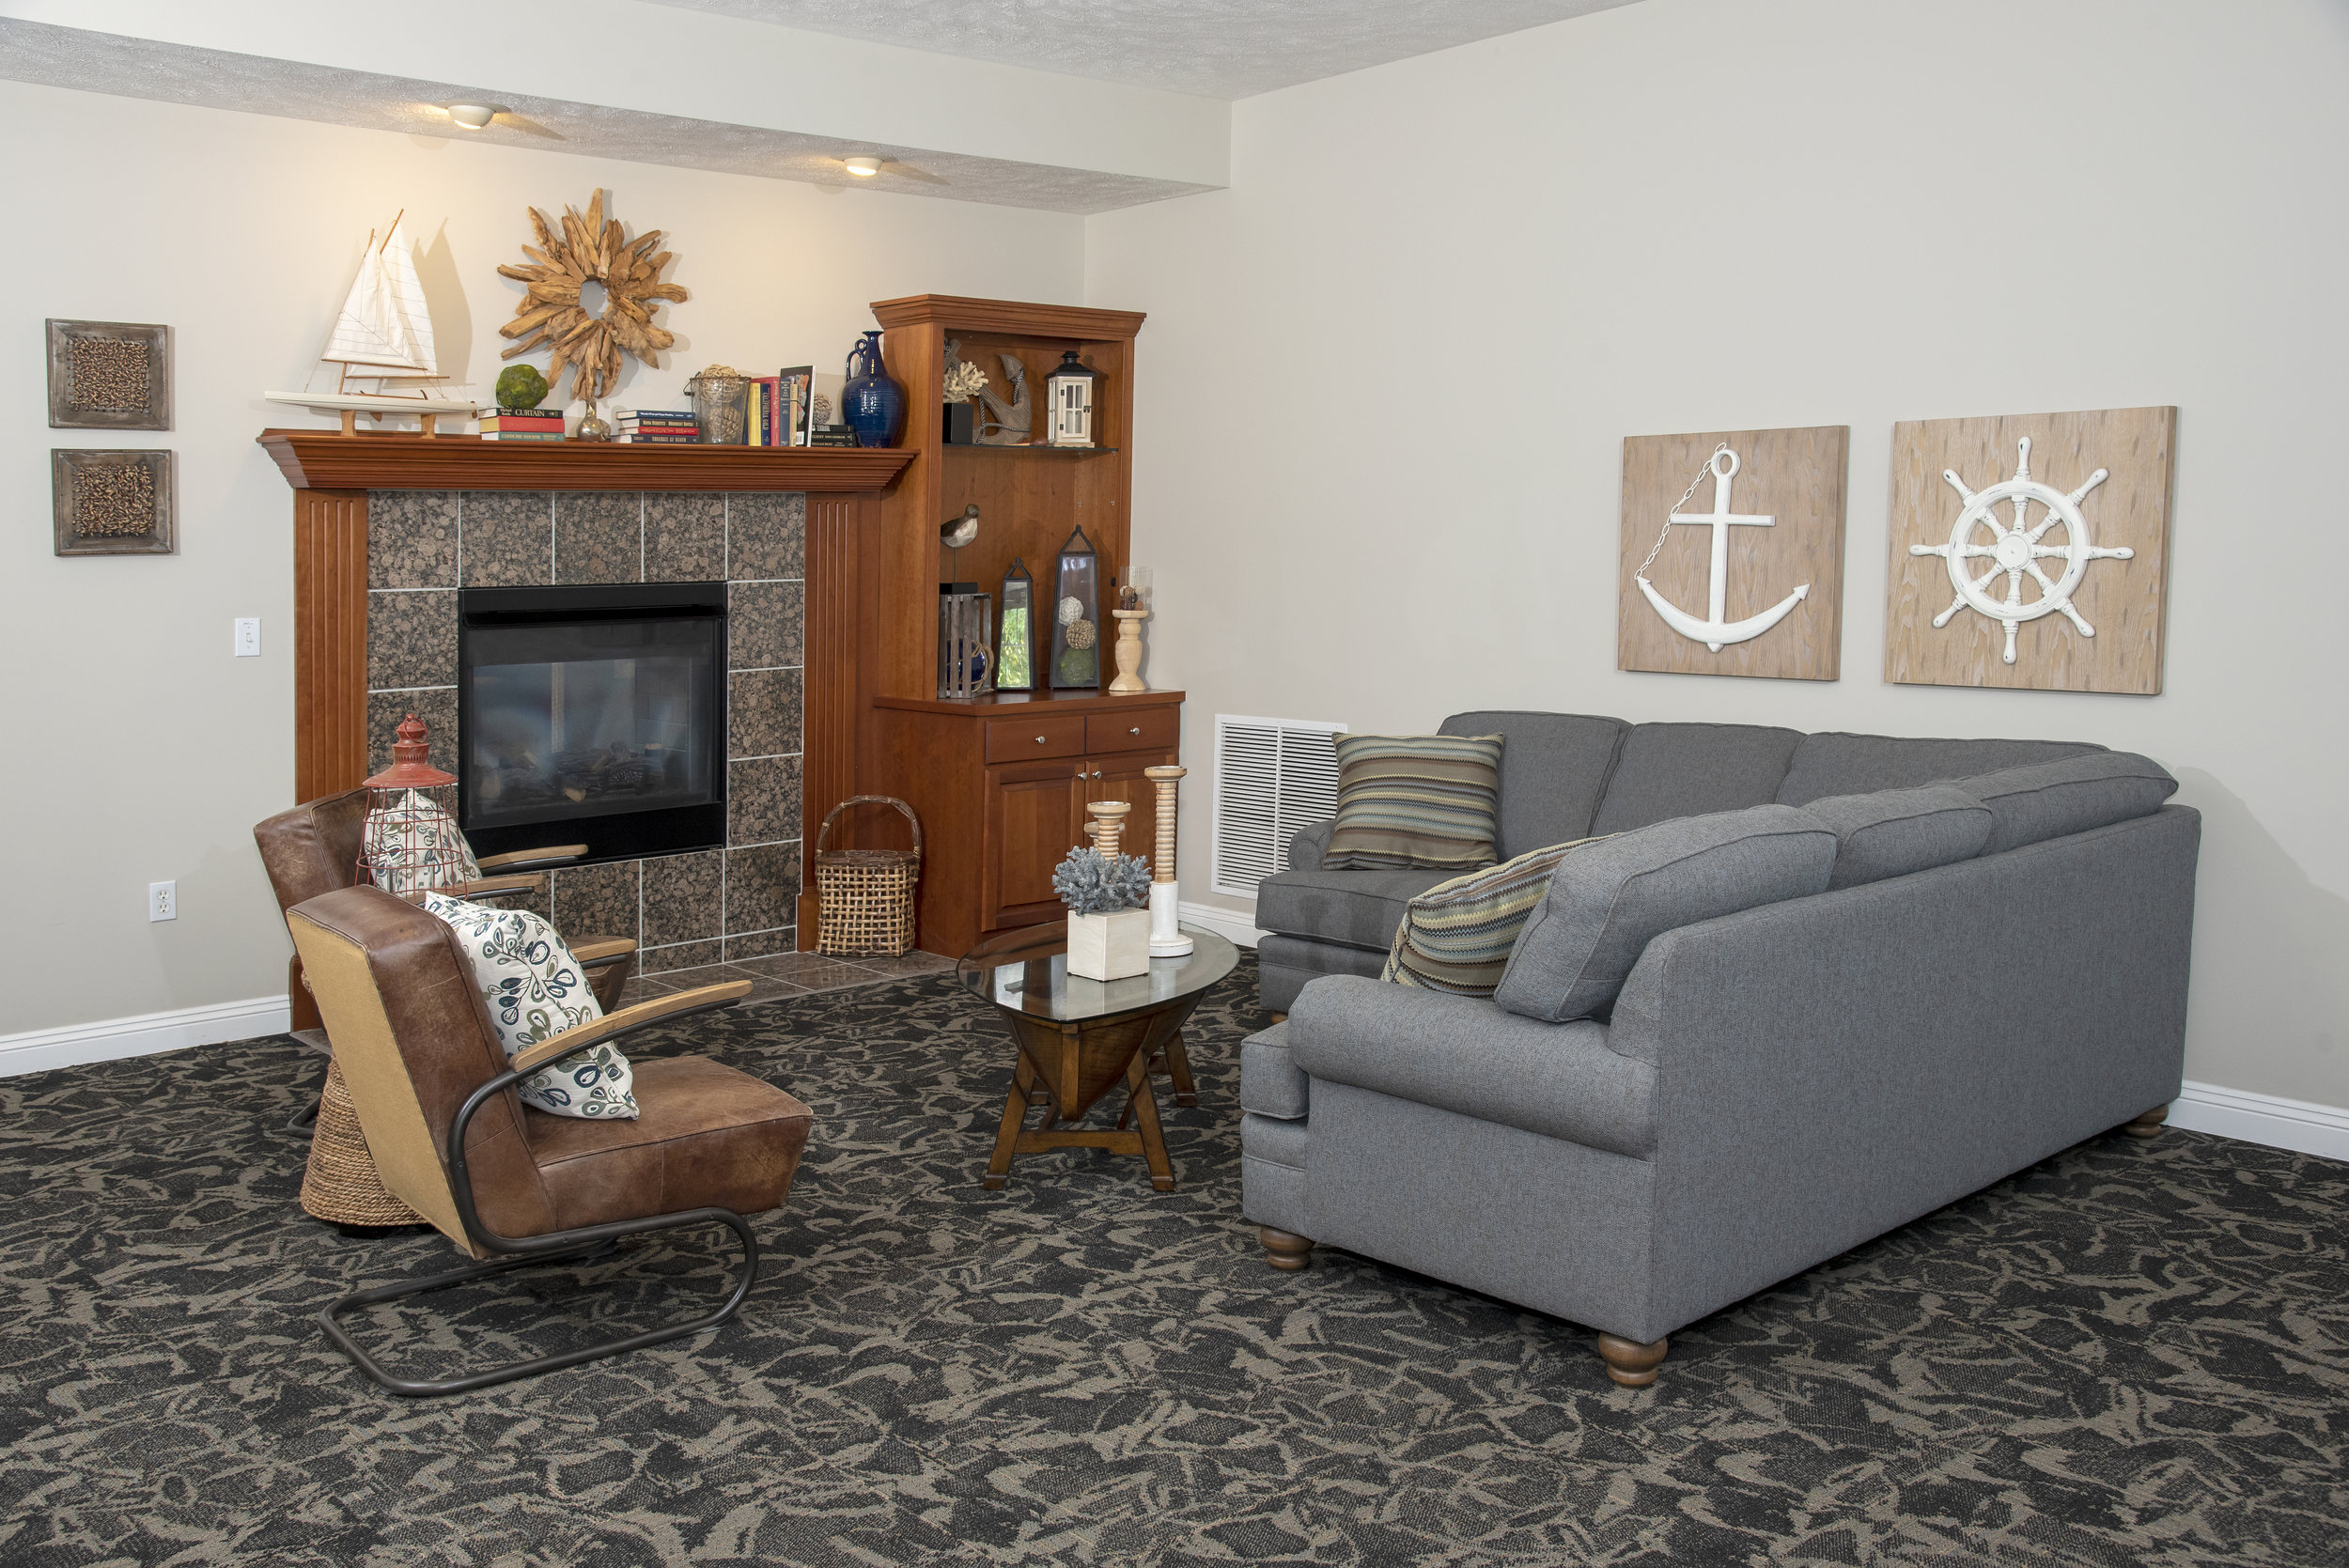 08 The Perfect Community Room for Entertaining.jpg